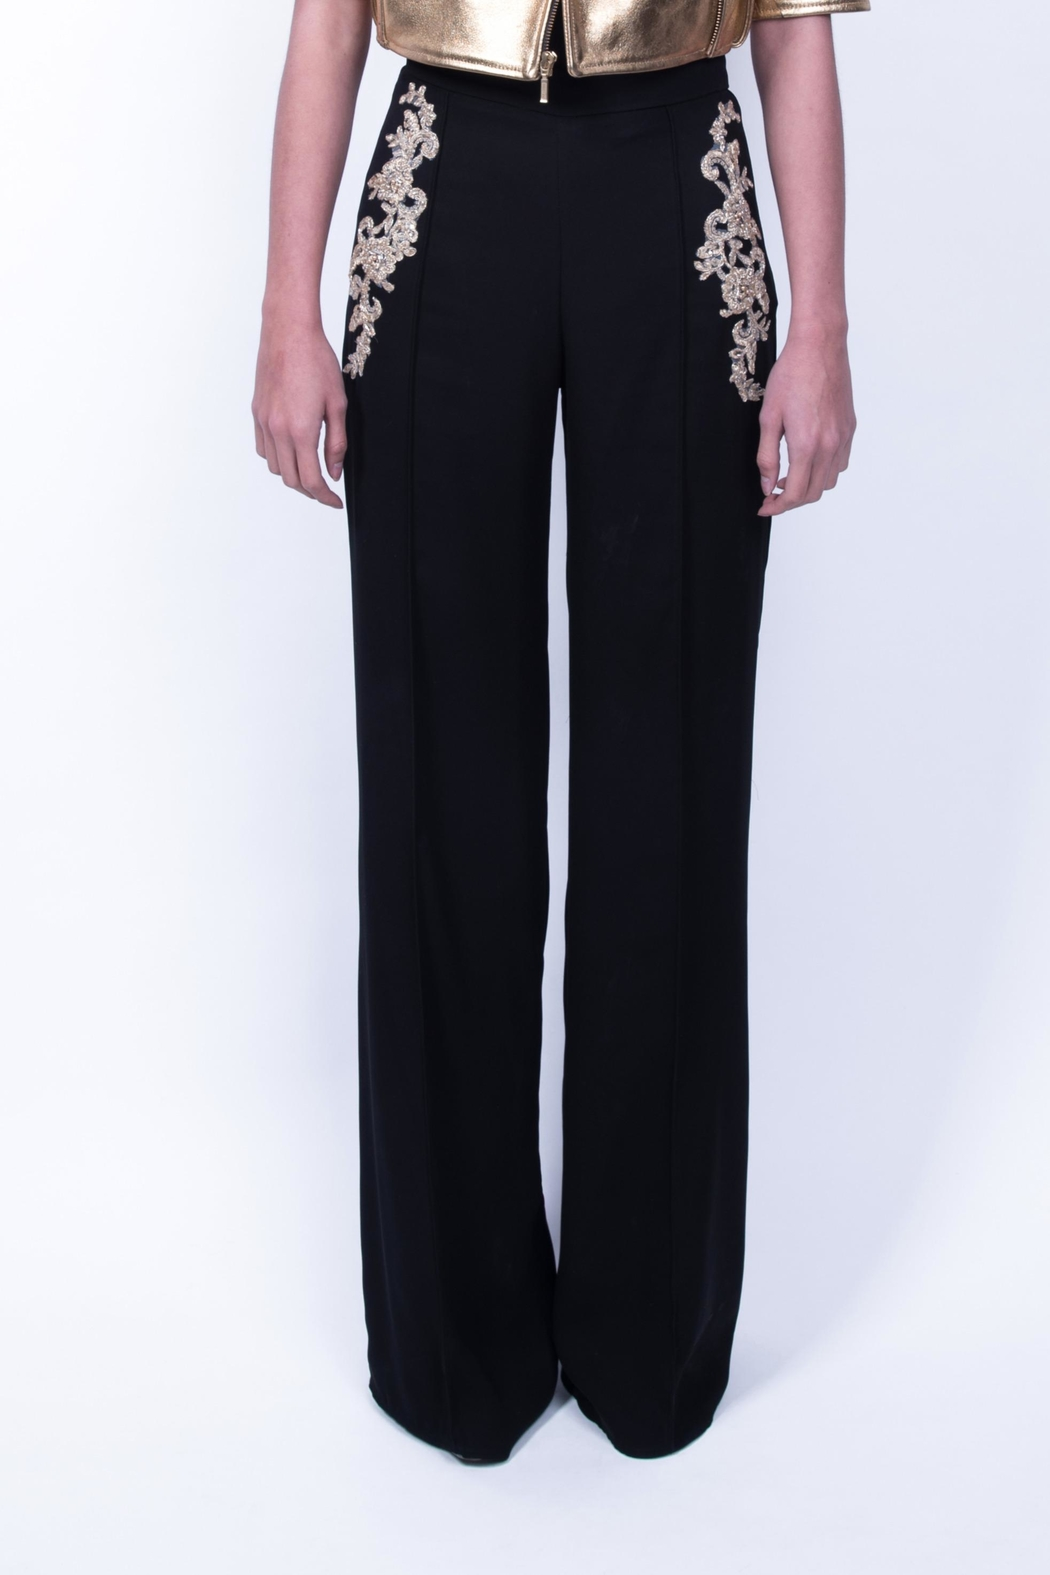 643c6ceac43 Viesca y Viesca Embellished Pant from Mexico — Shoptiques